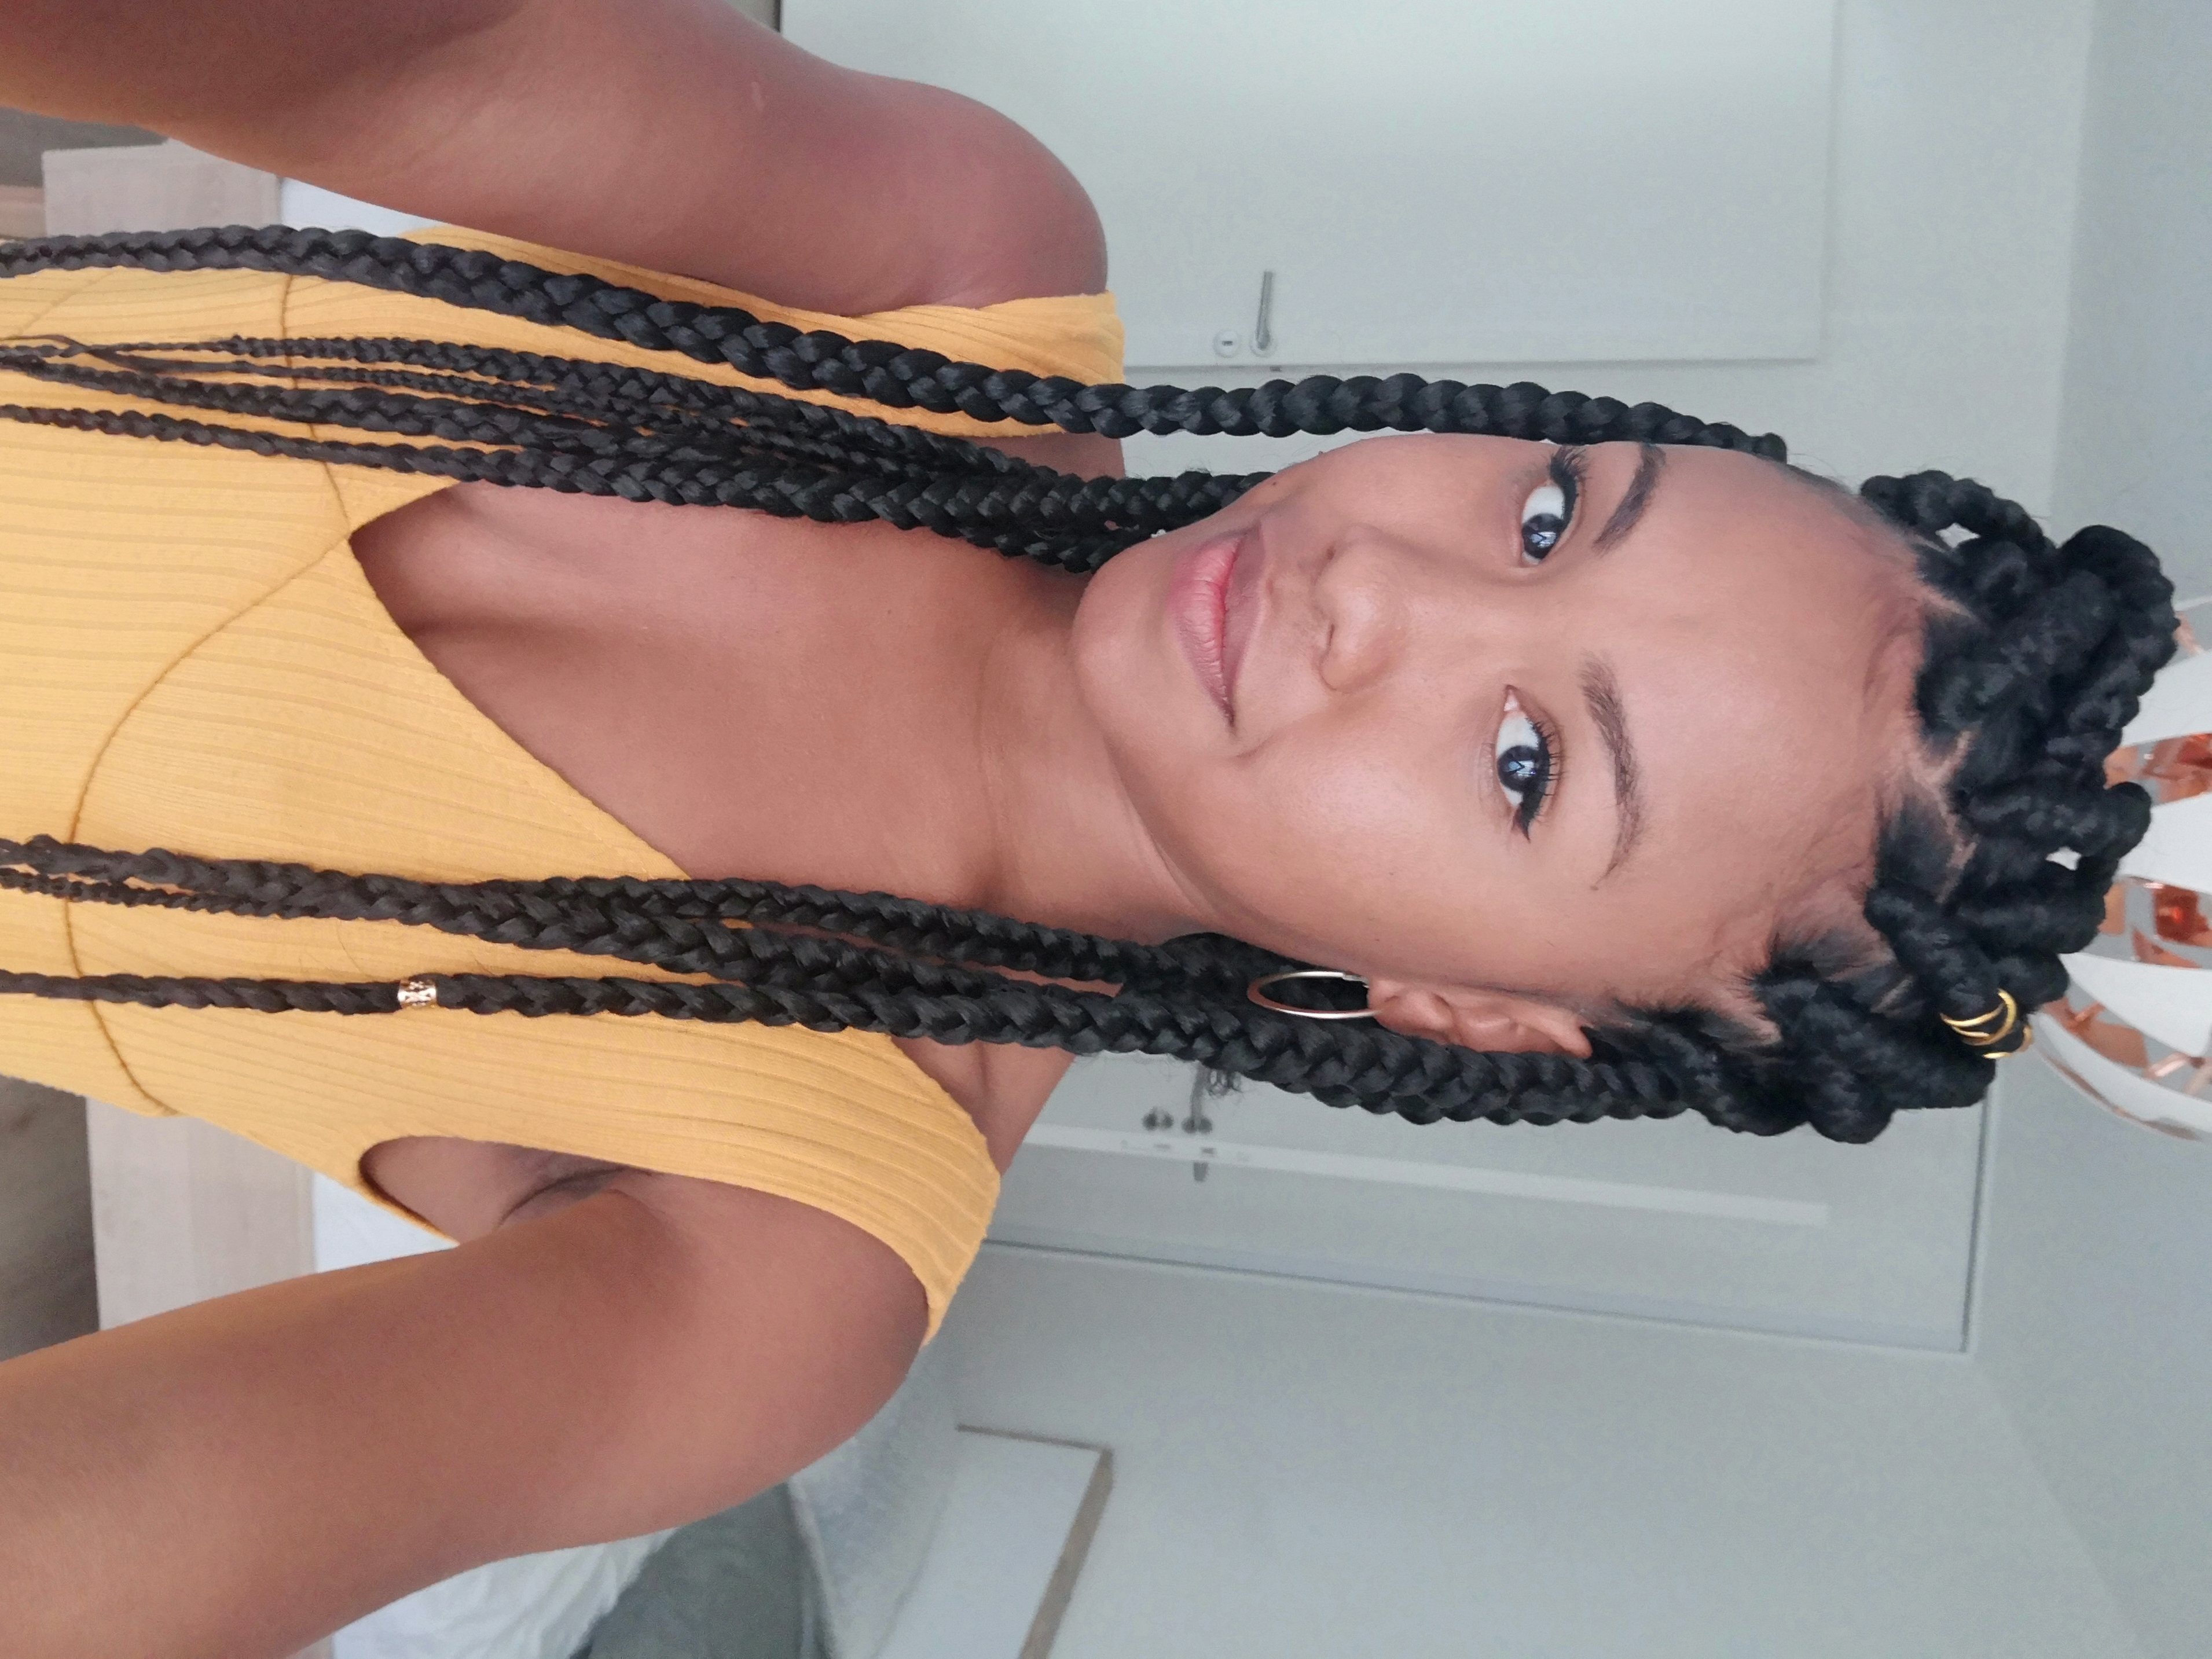 salon de coiffure afro tresse tresses box braids crochet braids vanilles tissages paris 75 77 78 91 92 93 94 95 LNSPWVTT